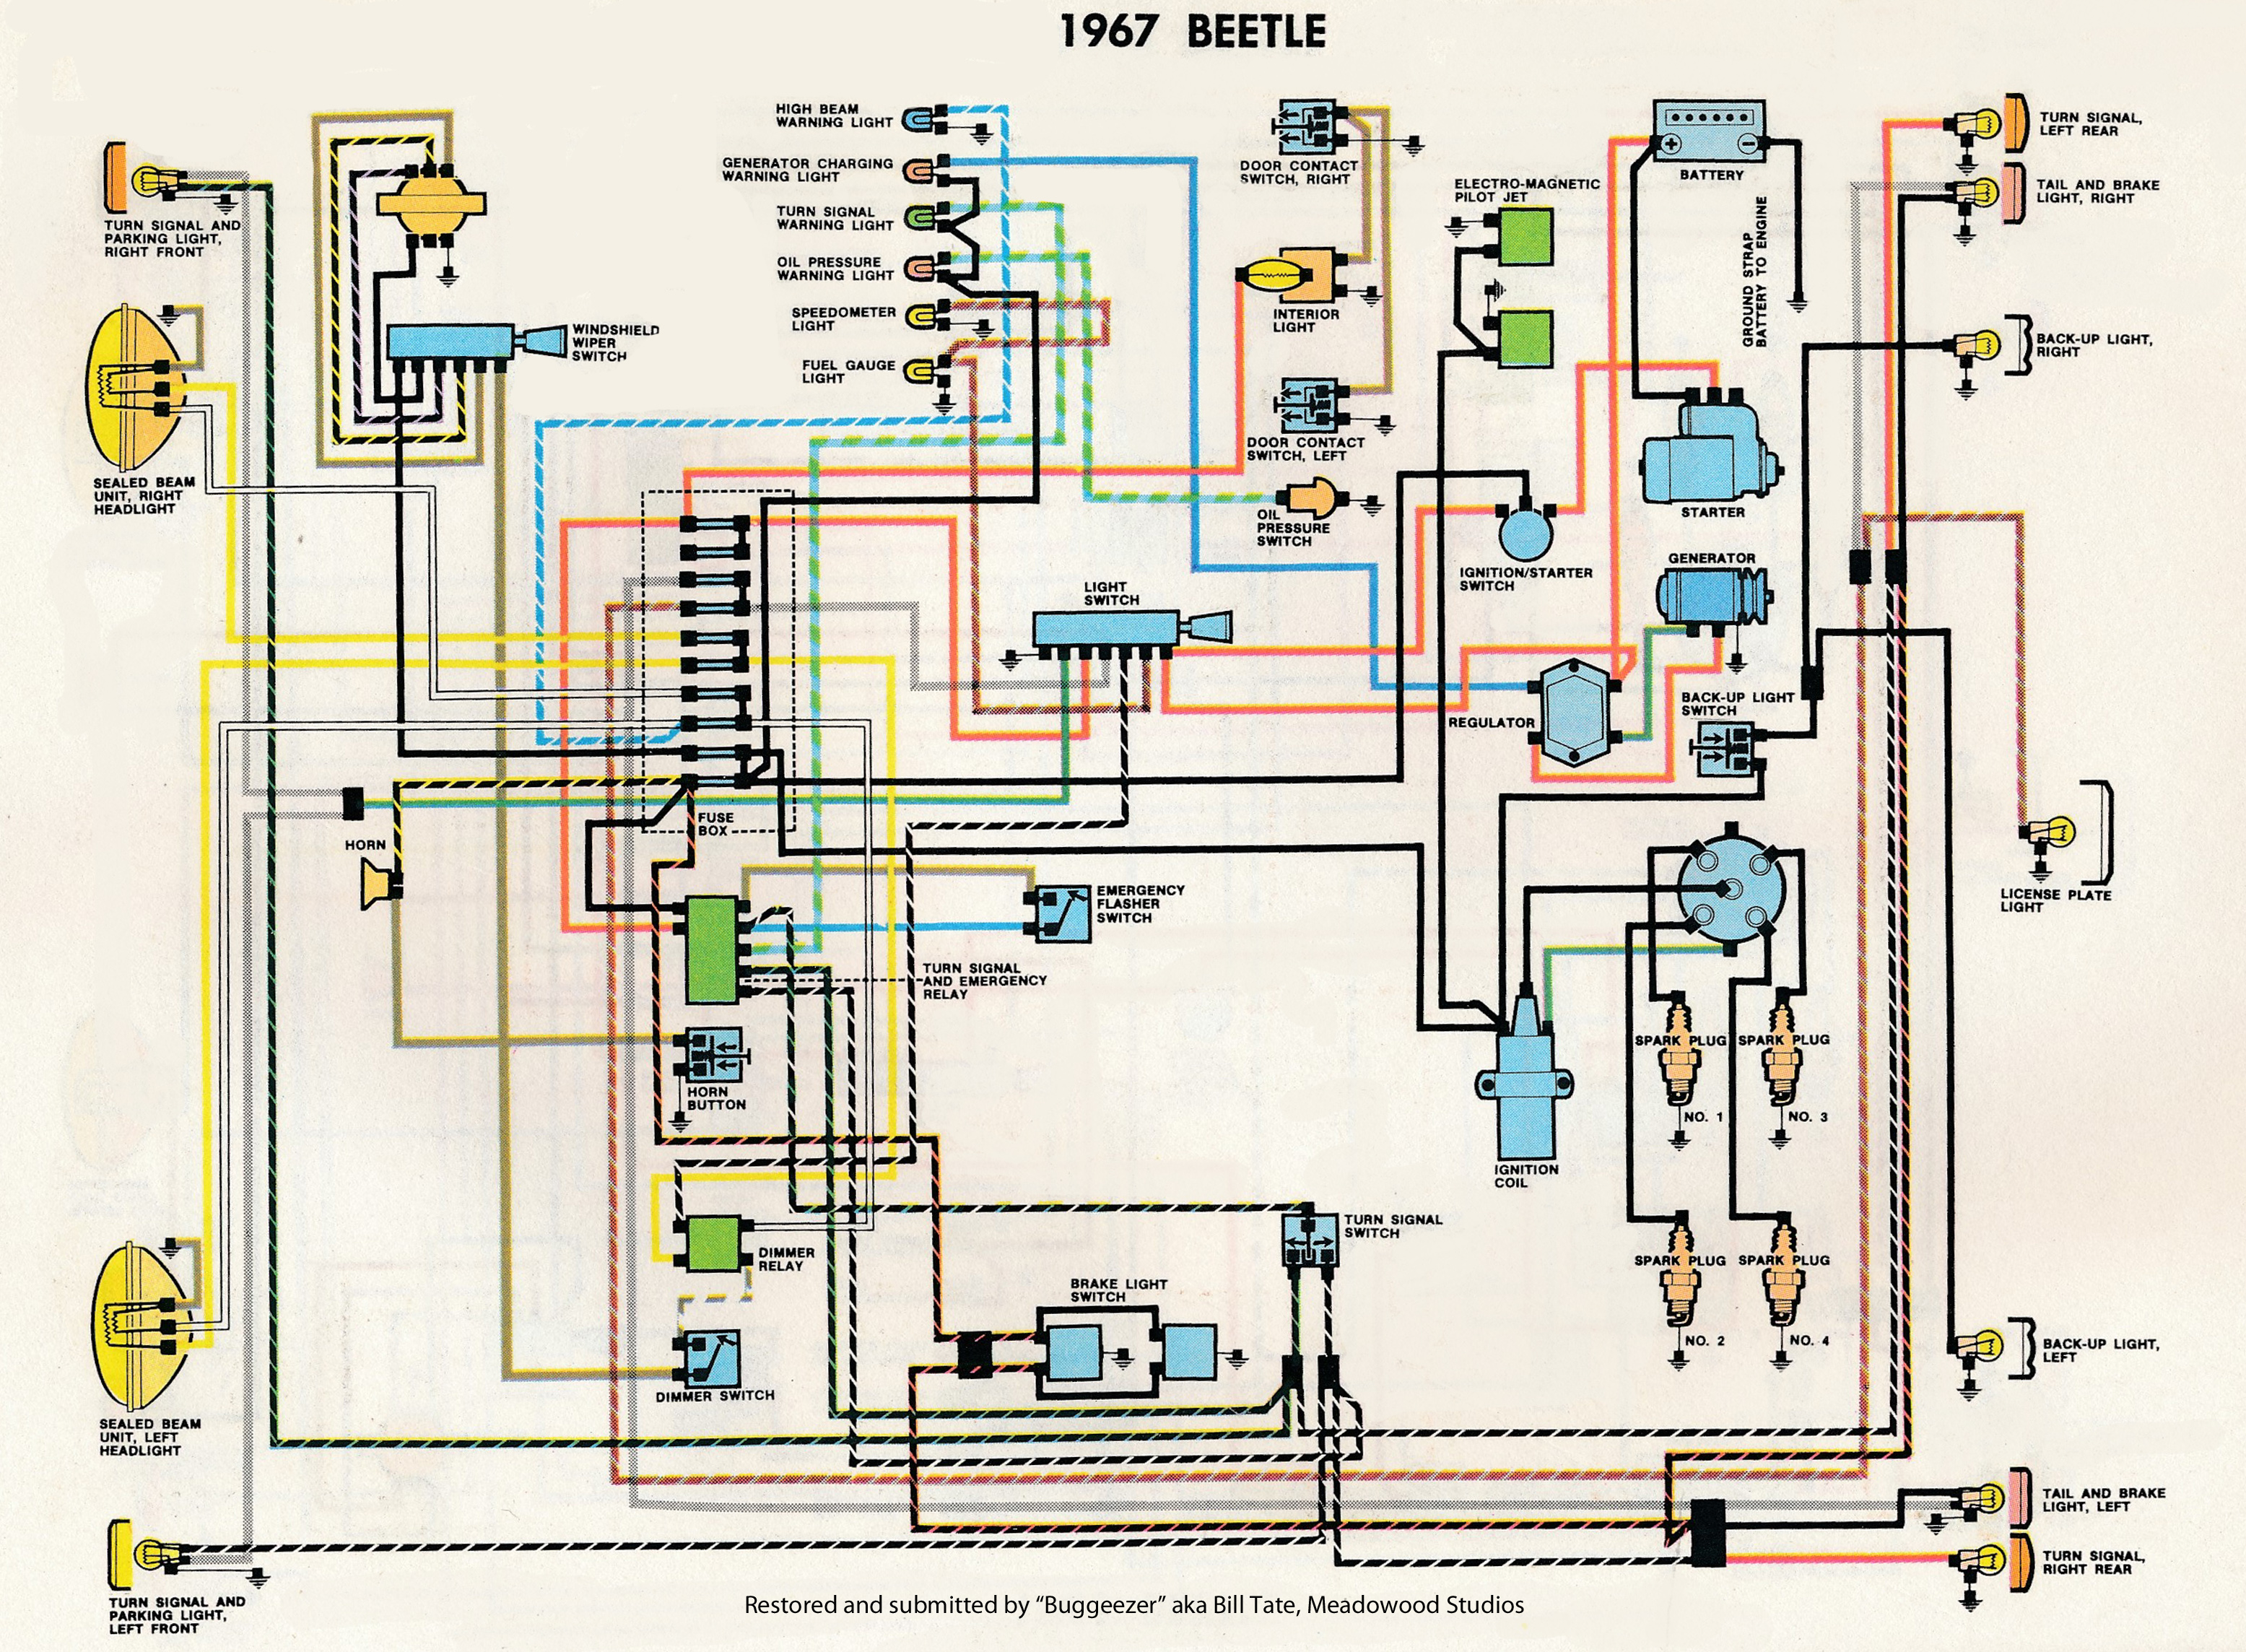 Beetle_1967_Clymers thesamba com type 1 wiring diagrams vw engine wiring diagram at gsmportal.co